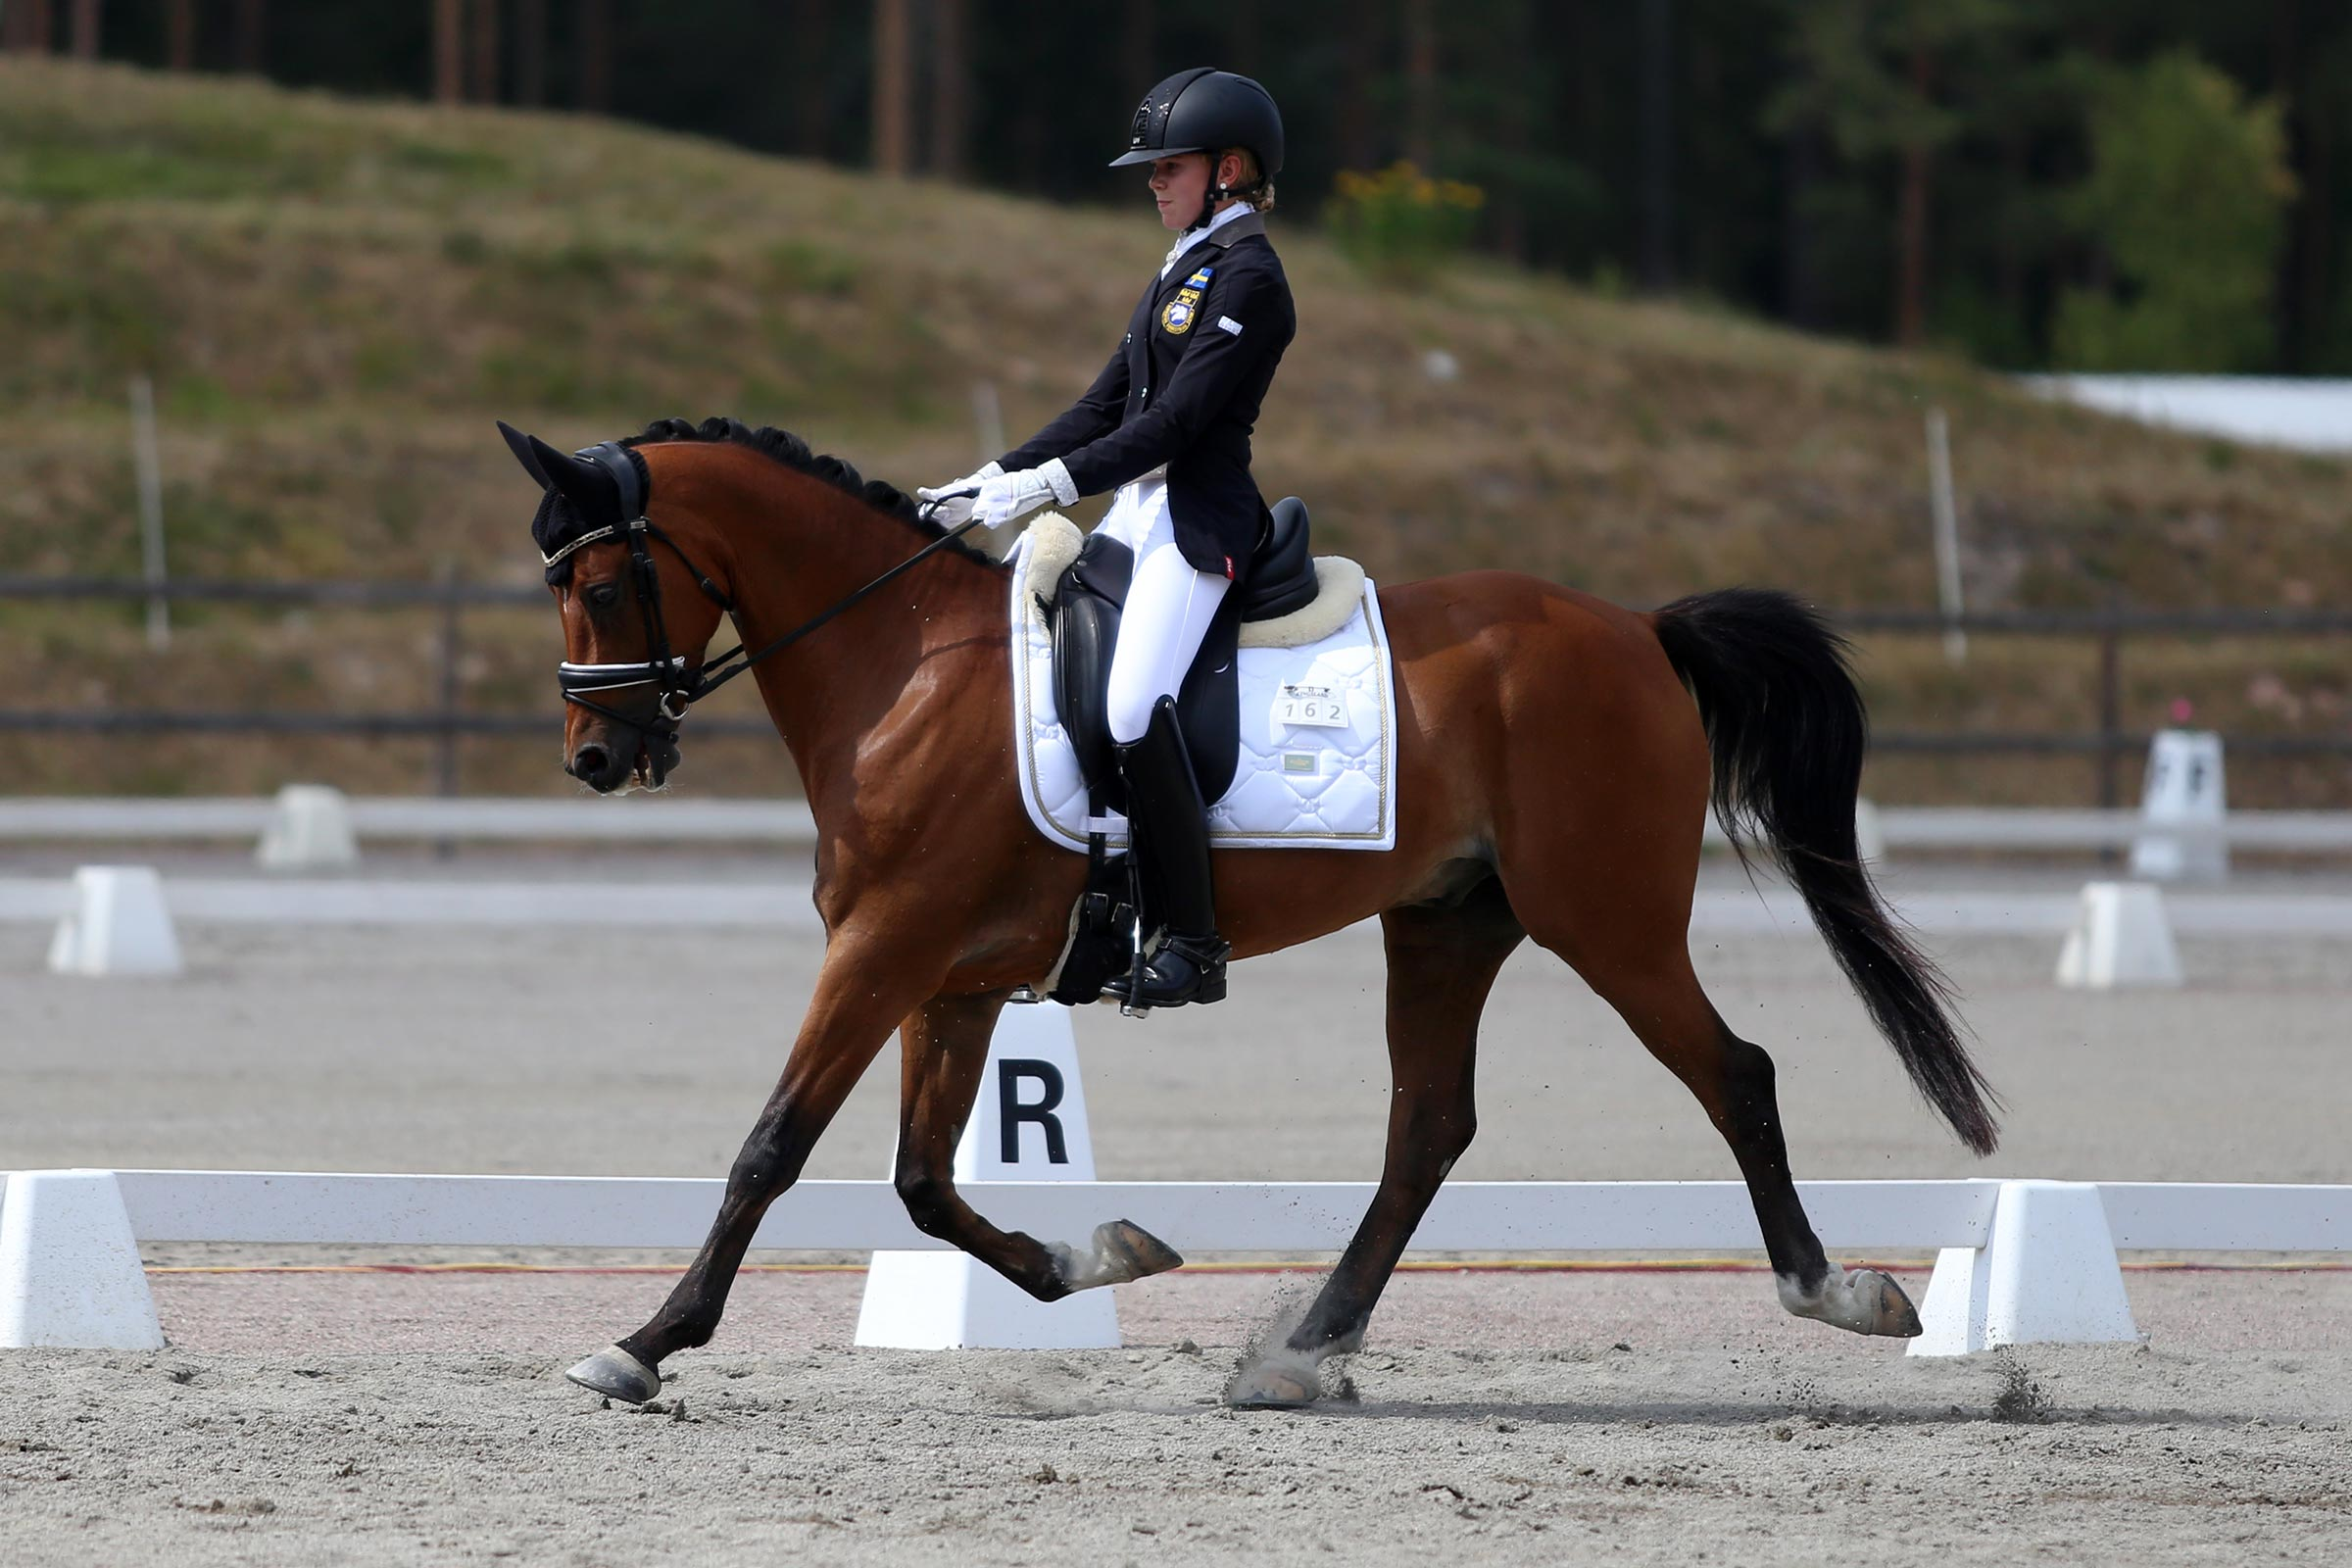 Silver: Meja Karlsson - Wise Guy (NL val f-08 e Bodo-Orchard d'Avranches, uppf S.H. Rutgers)